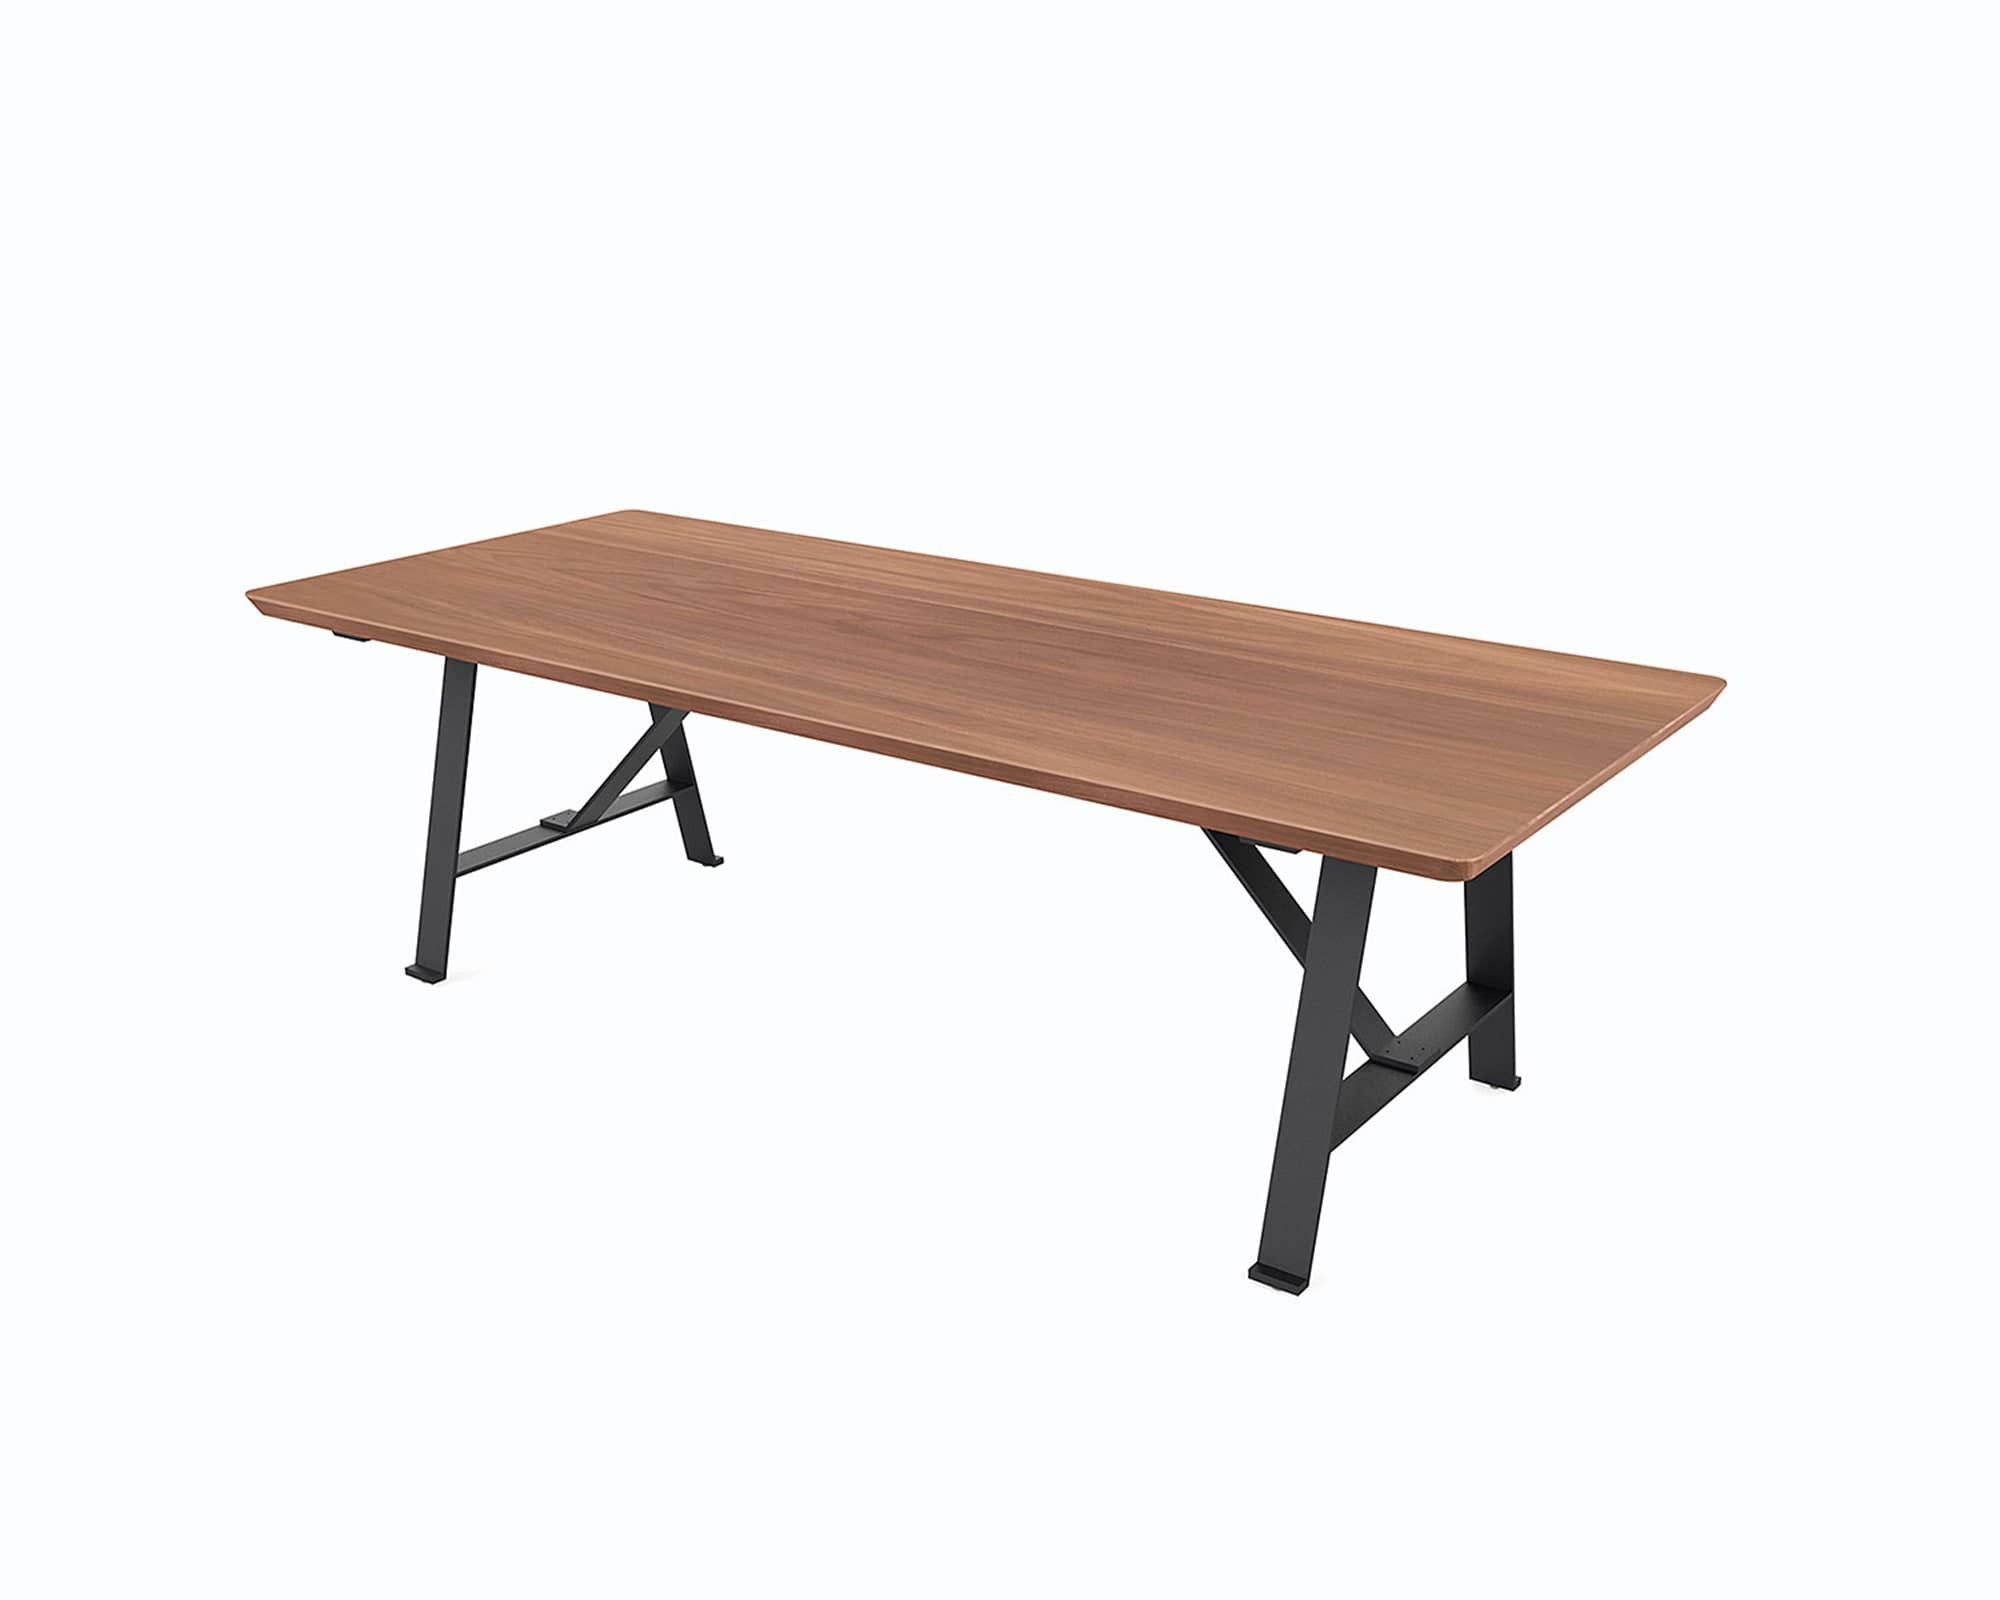 Exchange Dining Table Designer Dining Table Malaysia